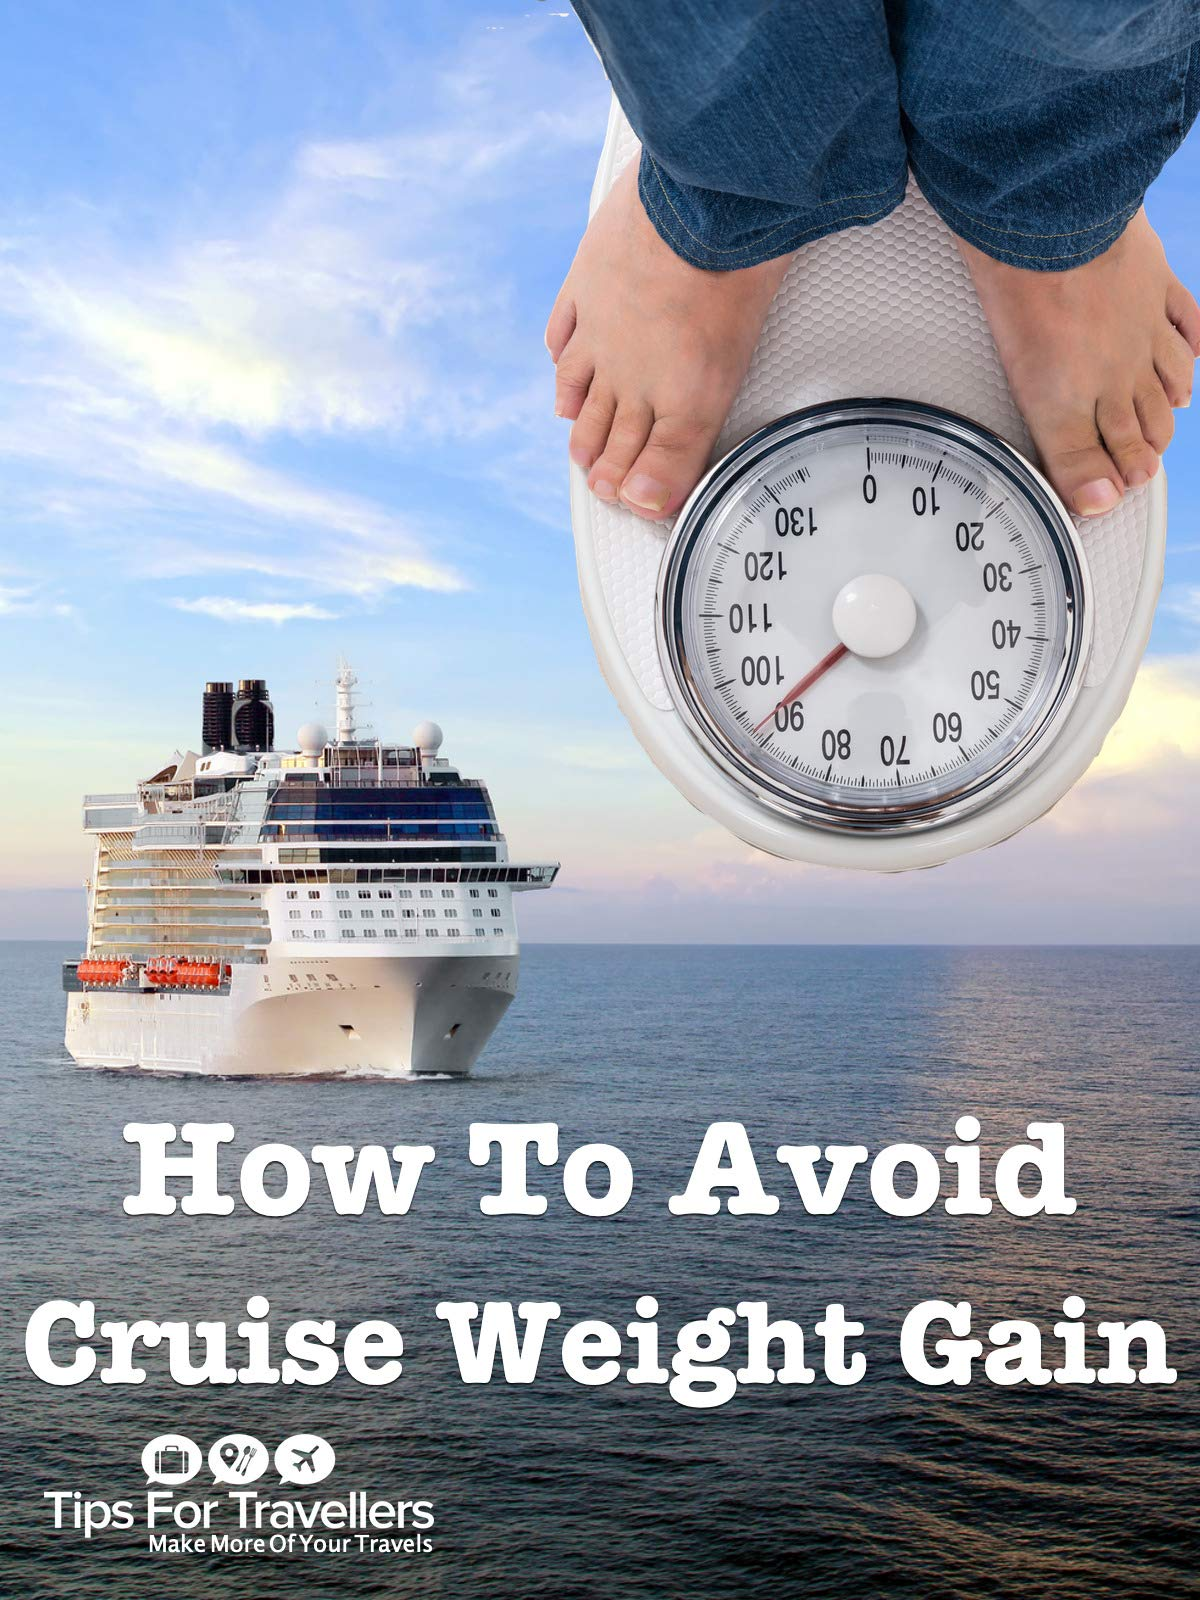 Clip: How To Avoid Cruise Weight Gain